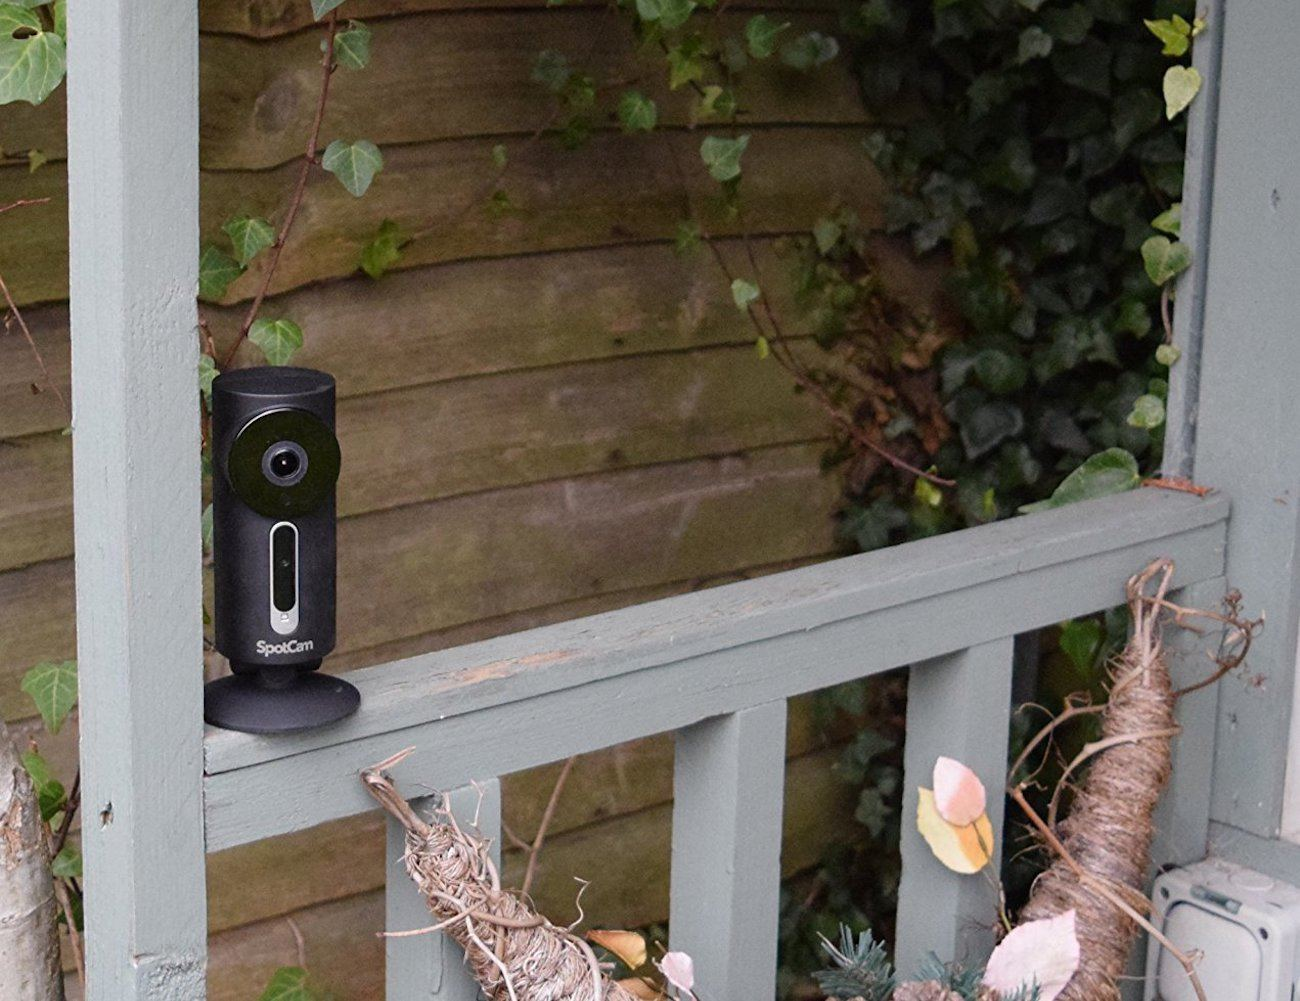 SpotCam Sense Pro Outdoor Security Camera